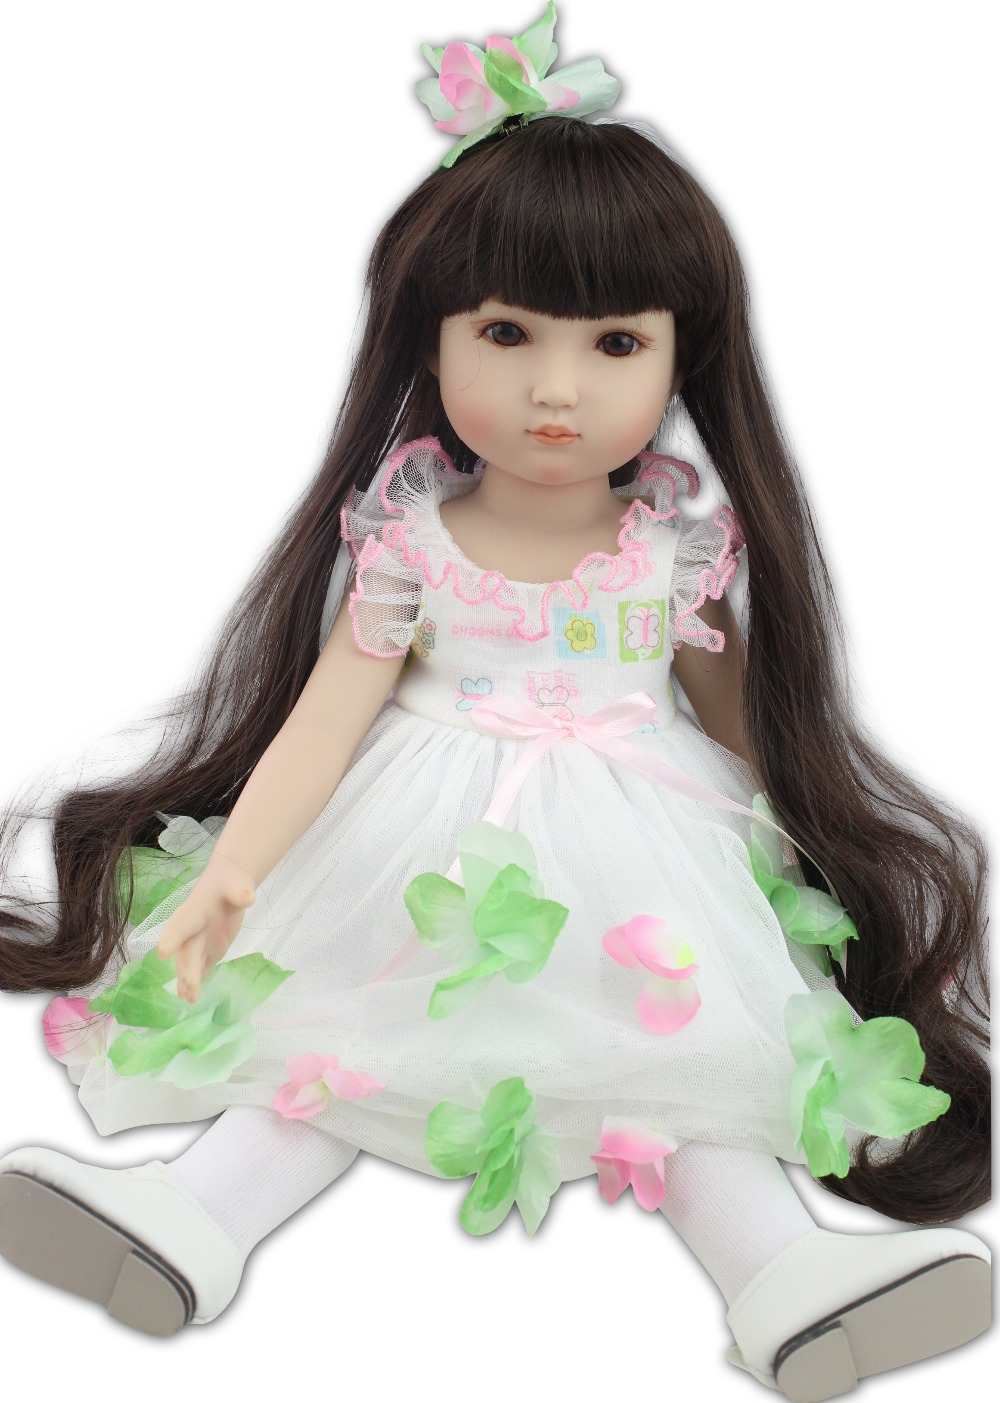 New design most popular 18inches fashion play doll education toy for girls birthday Gift industrial design education